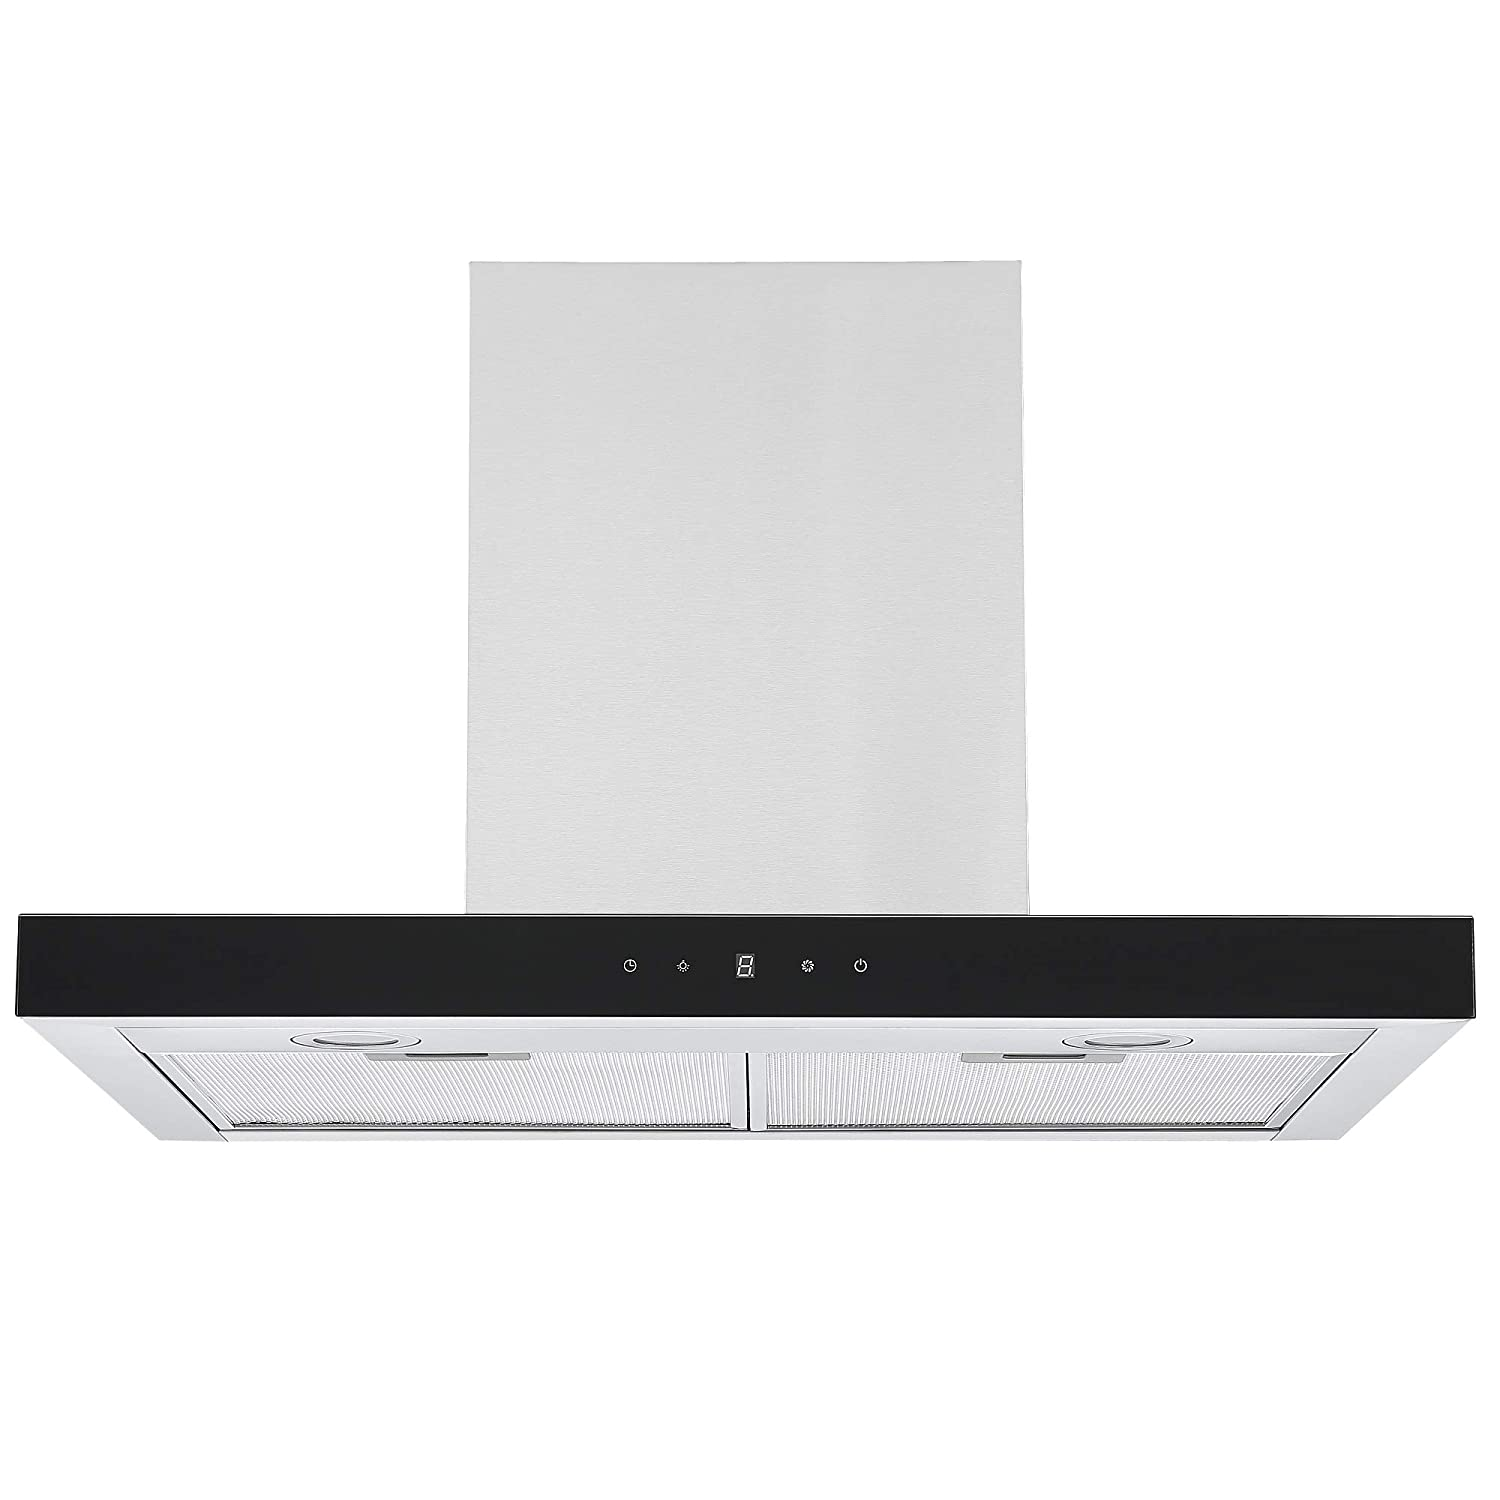 Black Cookology Linear Cooker Hood Touch Control 70cm Designer Extractor Fan Wall Mounted